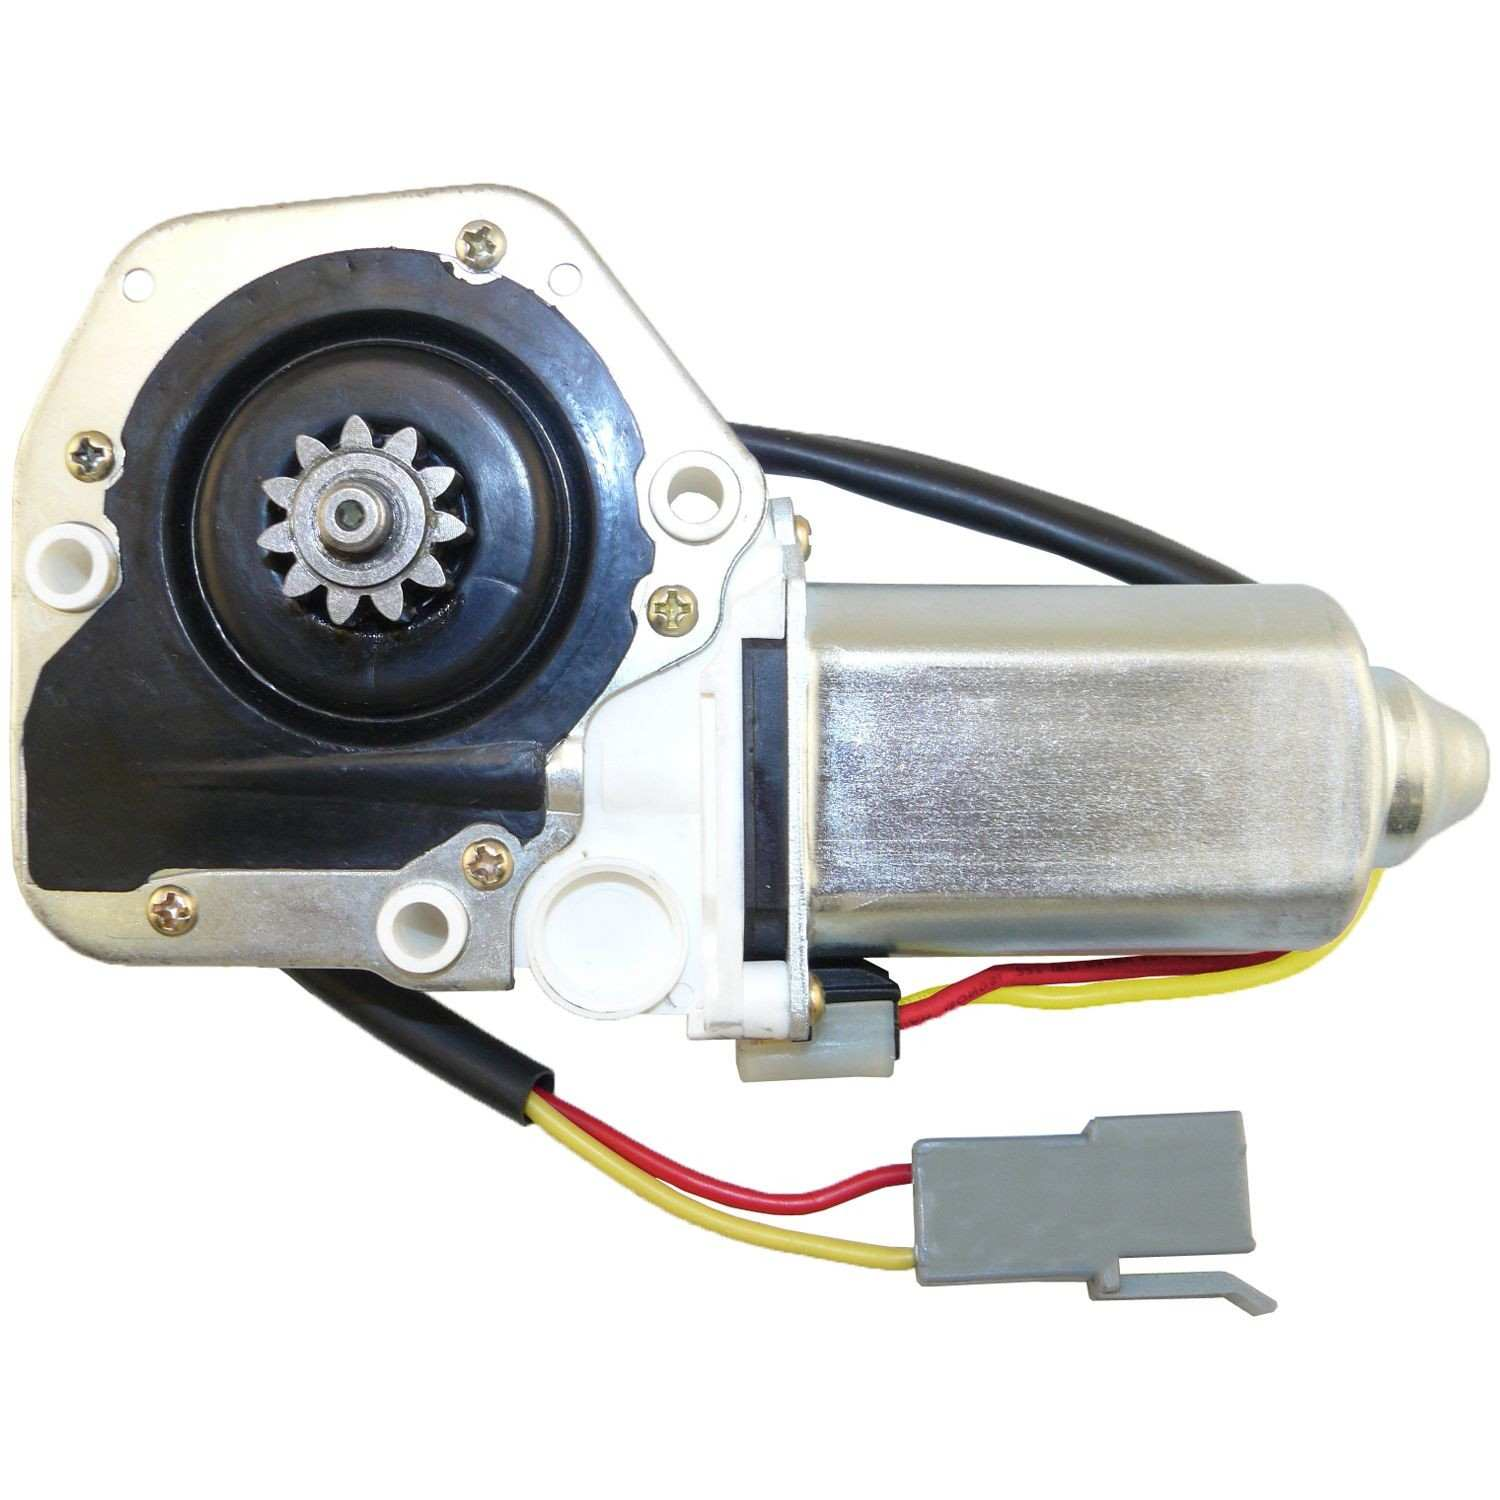 MAGNETI MARELLI OFFERED BY MOPAR - Power Window Motor (Front Left) - MGM 1AMWM83103